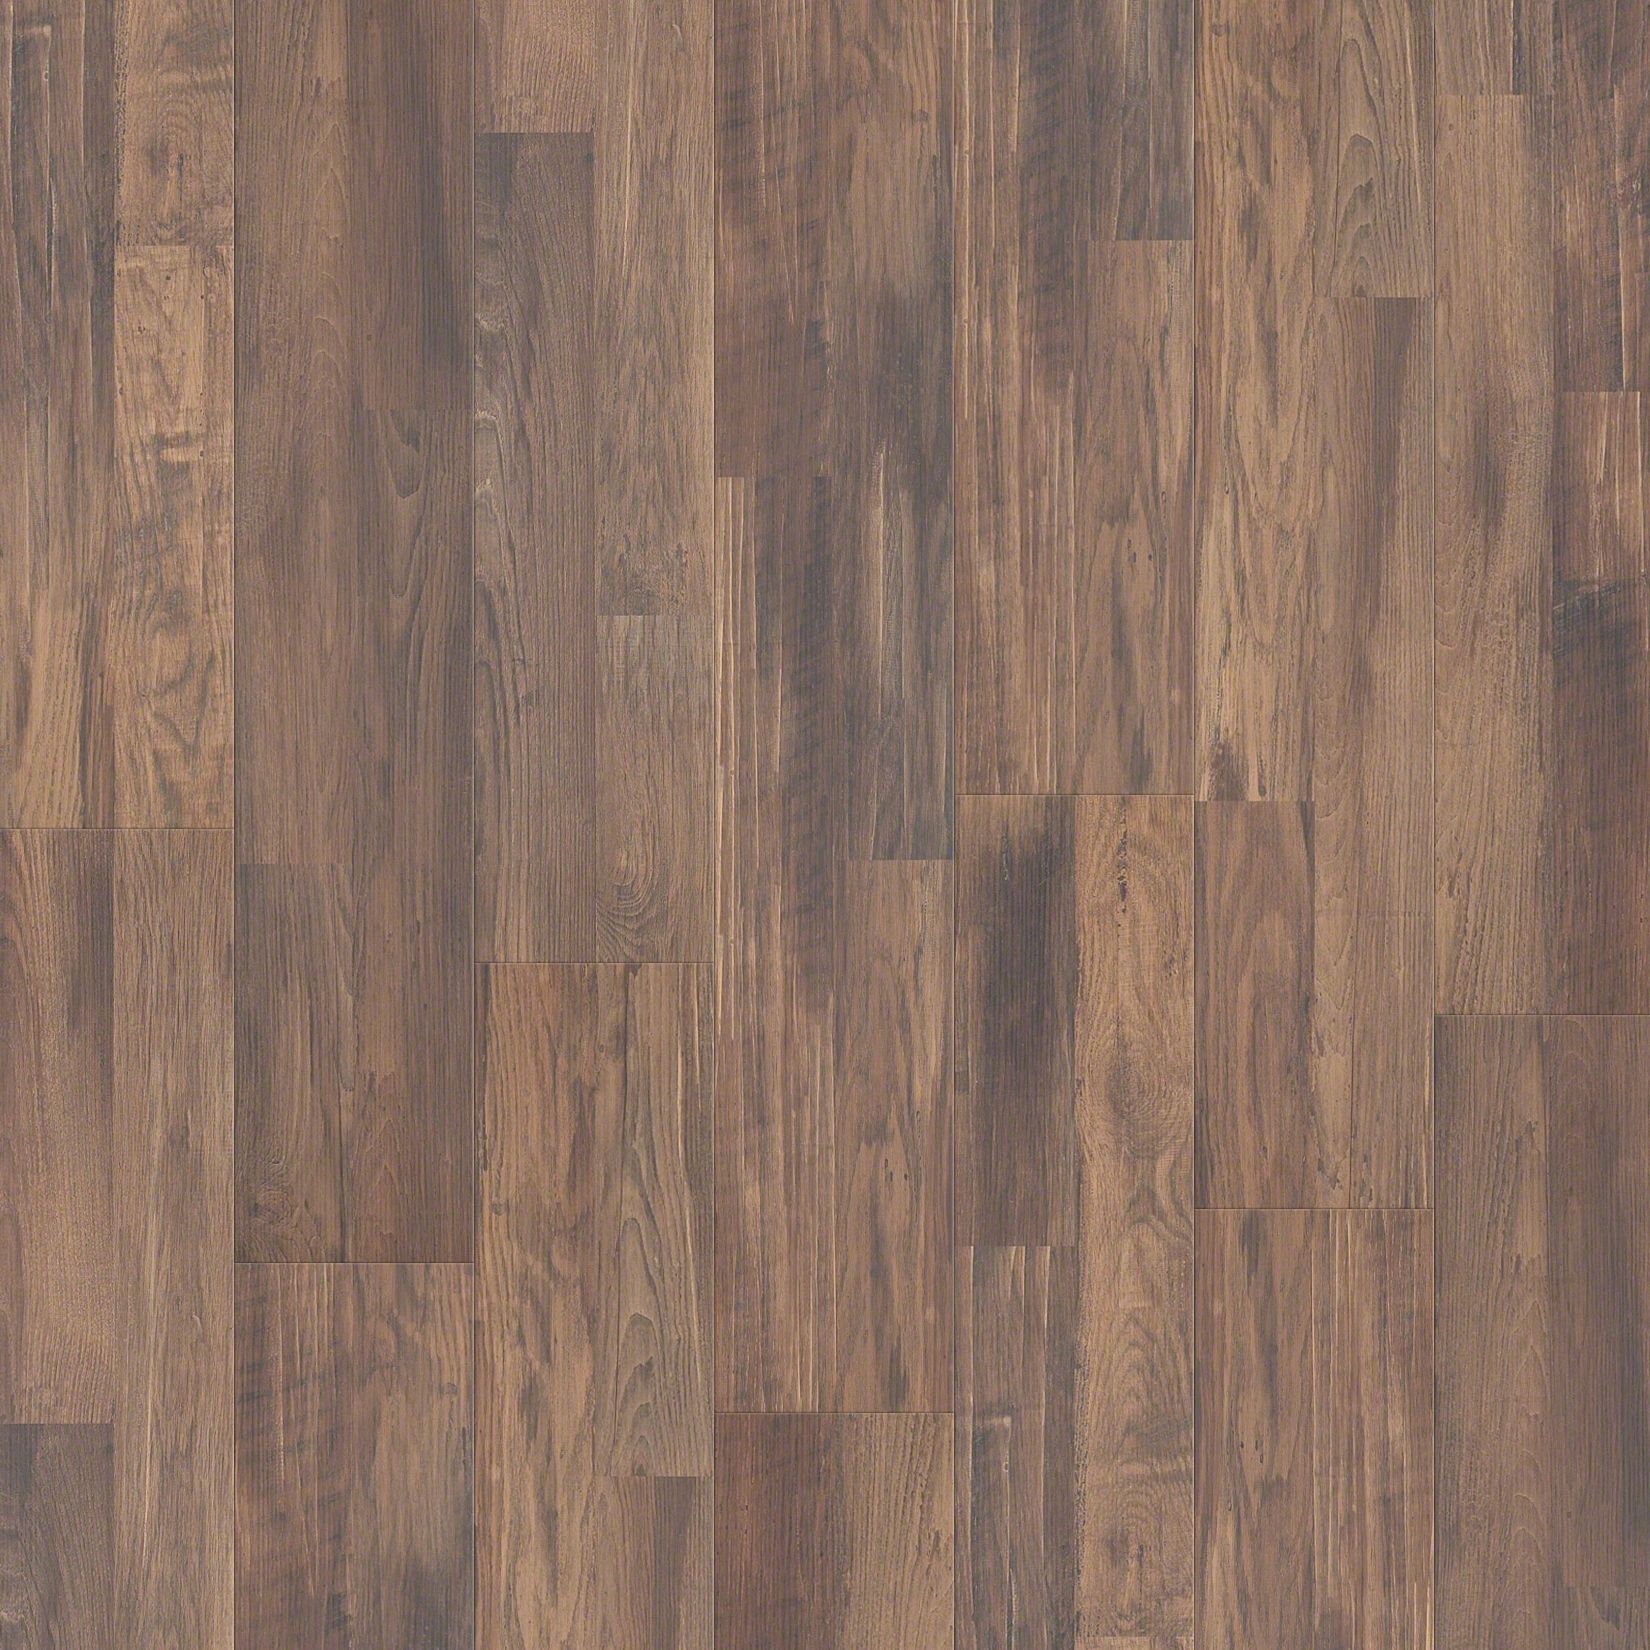 Laminate Flooring Wood Laminate Floors Flooring Shaw Flooring